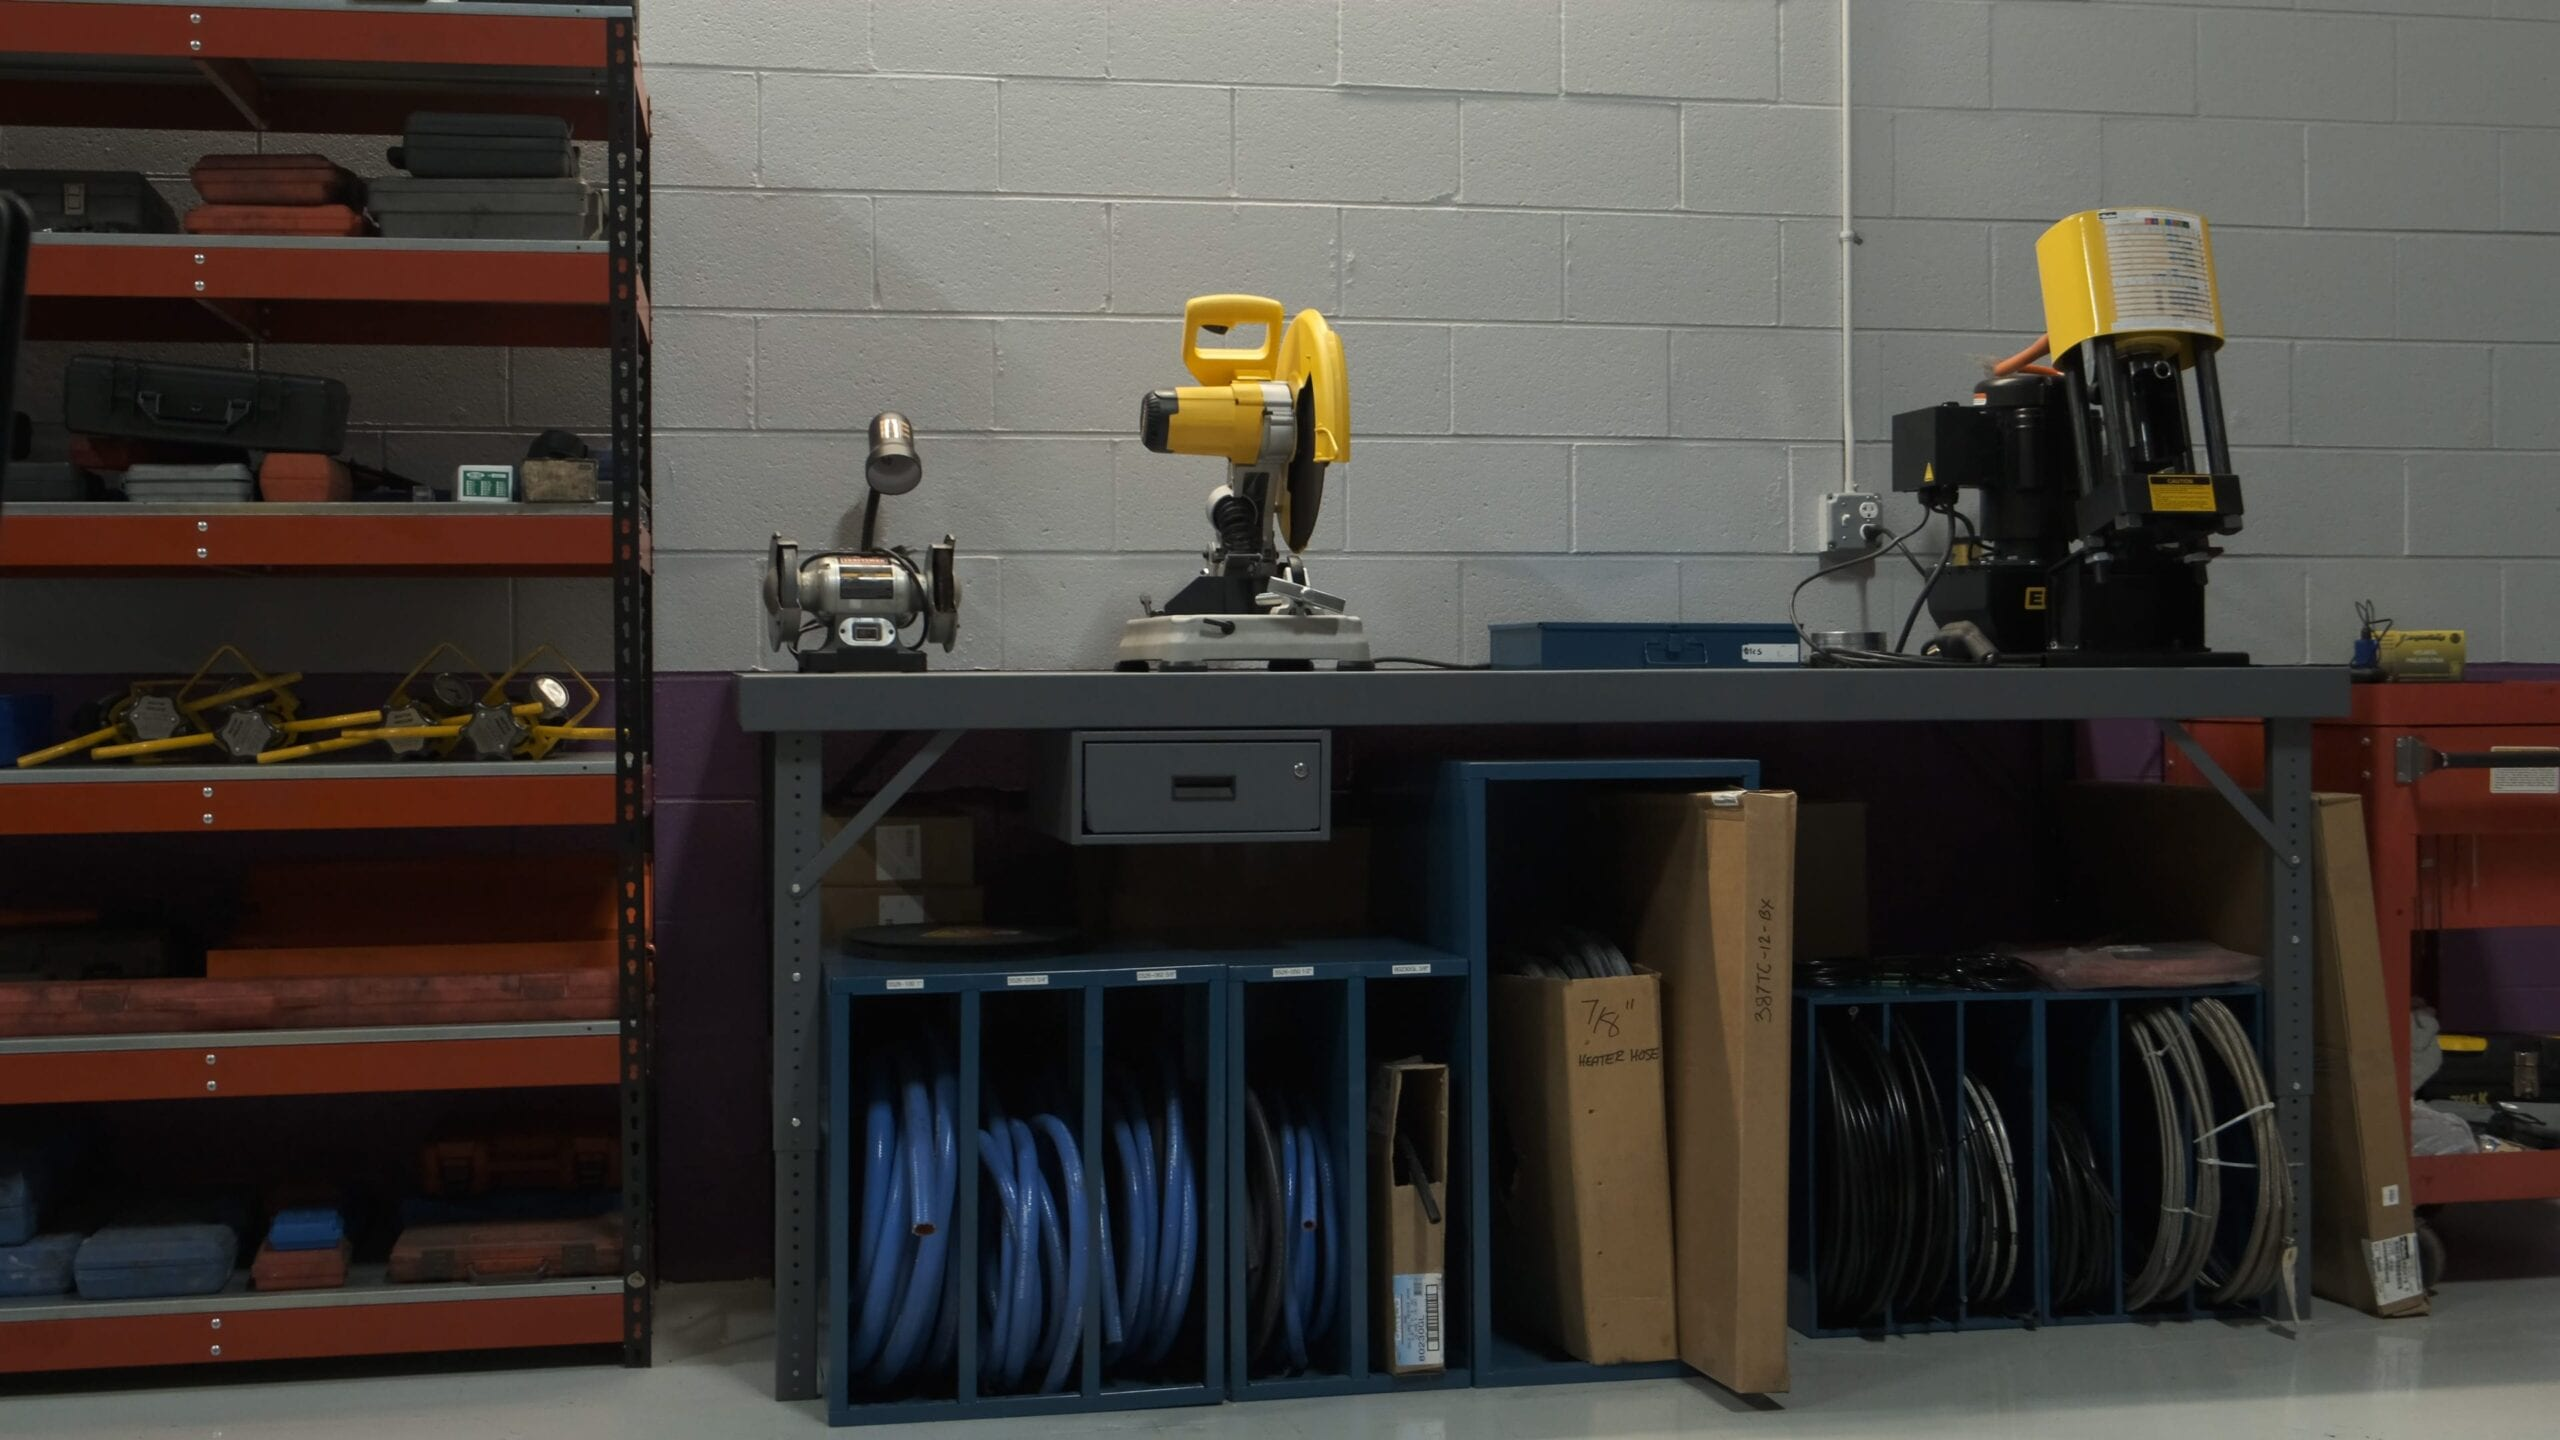 Station for custom hydraulic and air hose and fitting creation.